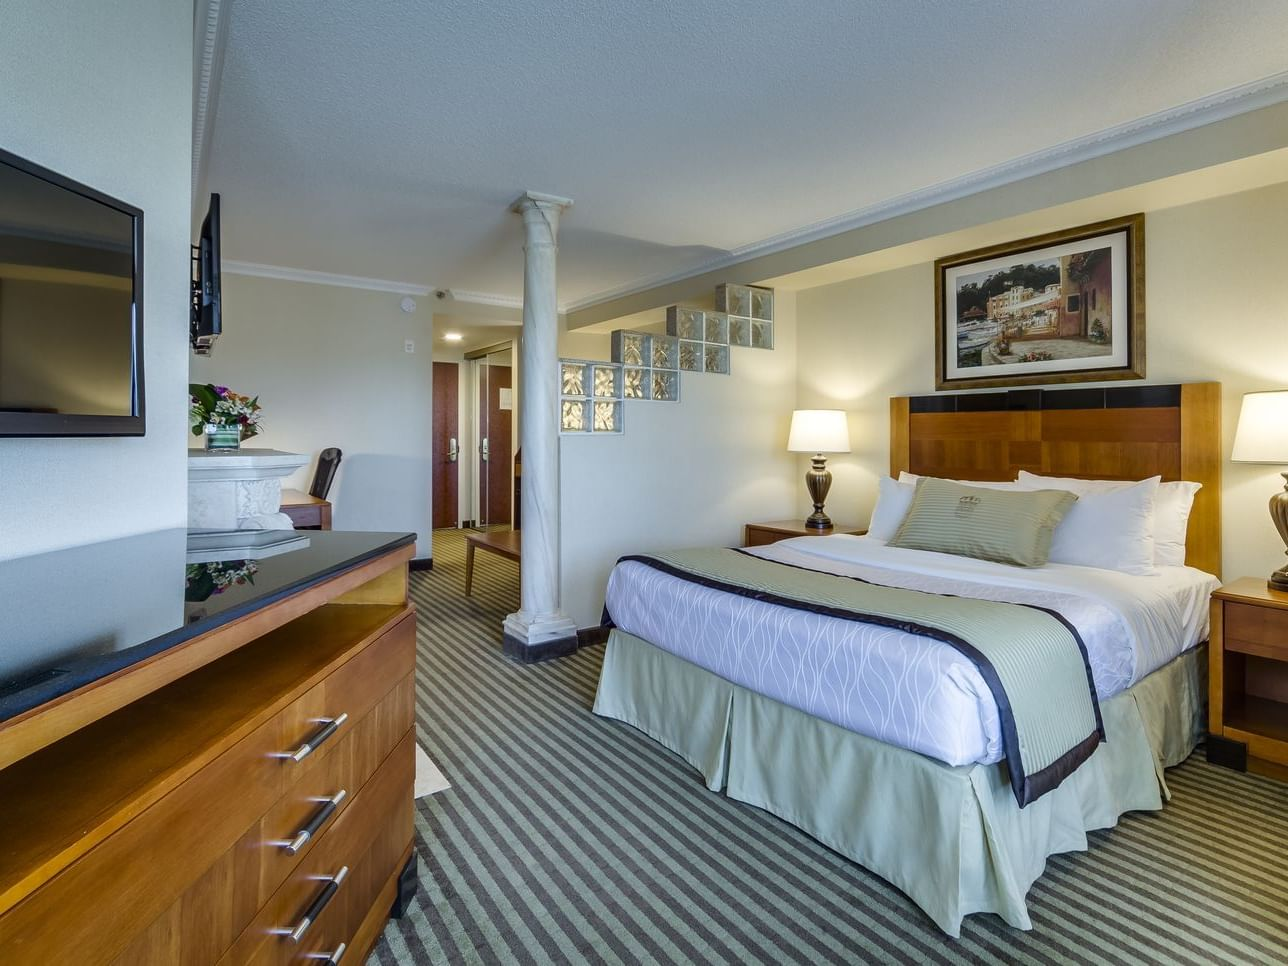 One Queen Bed - Monte Carlo Inns - Brand Site